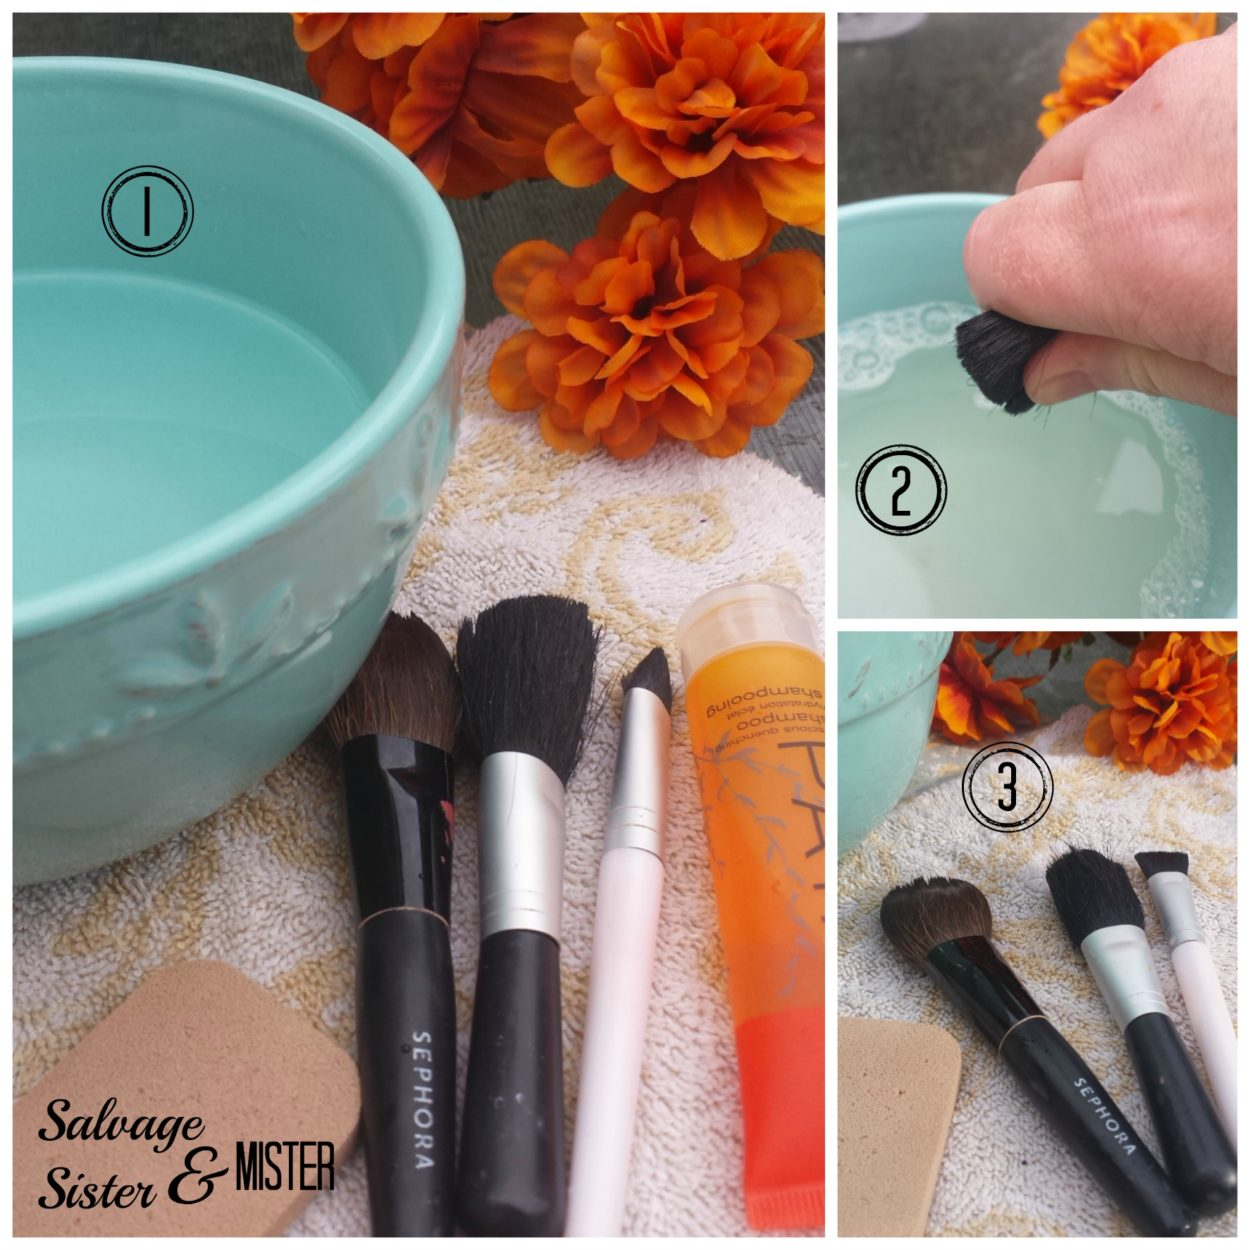 Quick way to clean your make up brushes using hotel shampoo. Do you know there is a right way to clean and dry them so they last longer? Get this tip and more ways to use what you have over at www.salvagesisterandmister.com